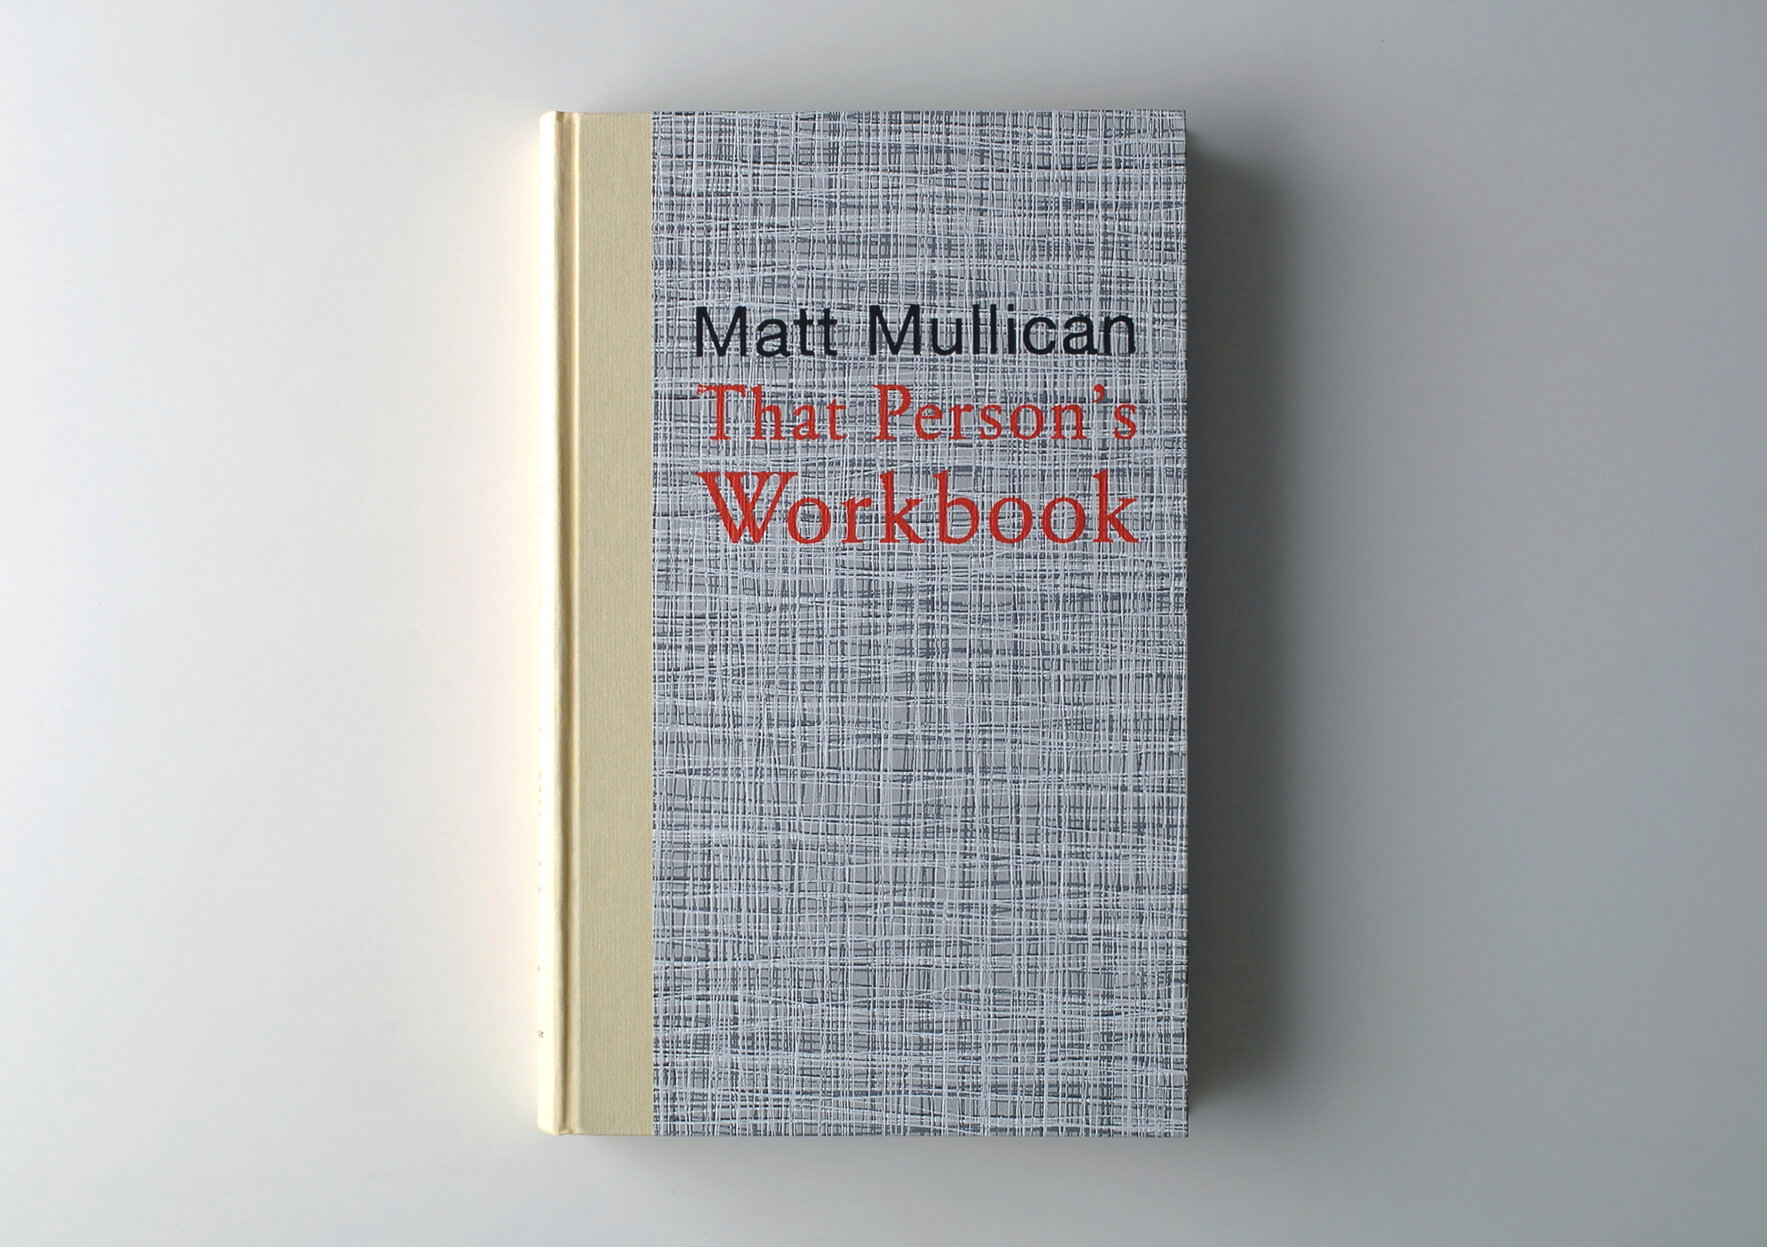 | That person's workbook | ProjecteSD